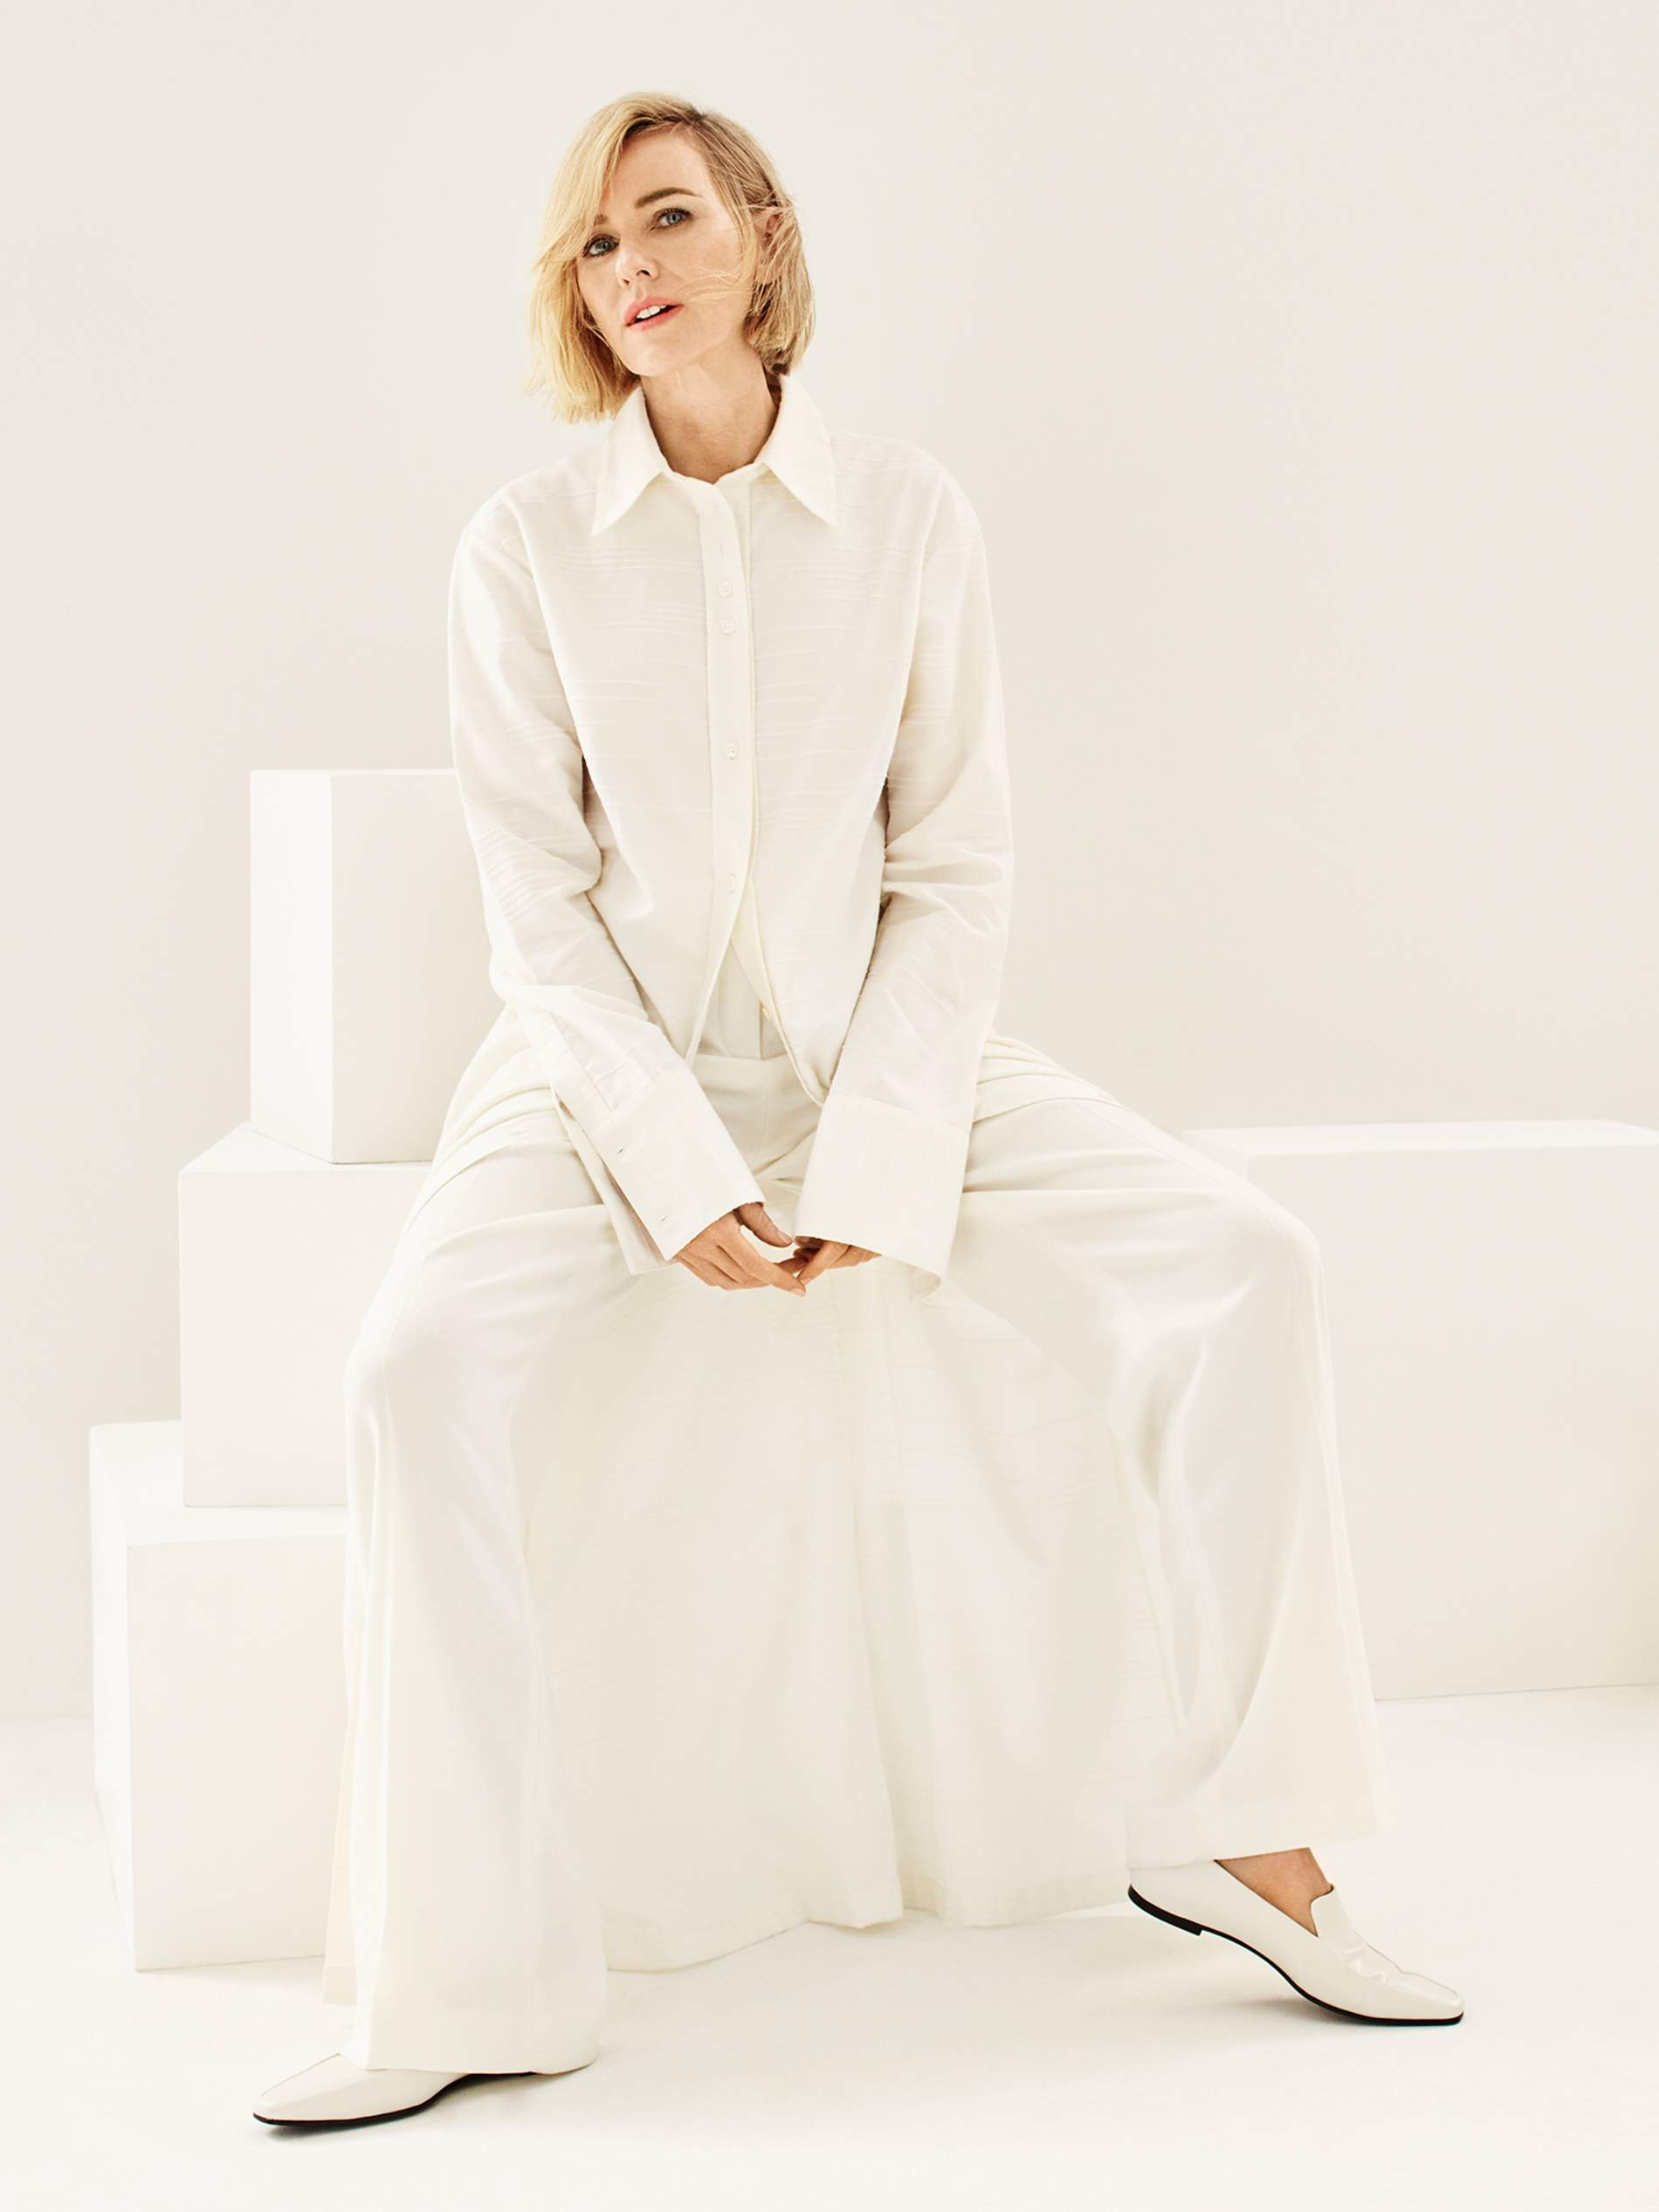 Shirt dress Deveaux; pants Joseph; shoes The Row. Naomi Watts by Jason Kibler for Porter Edit Aug. 2, 2019